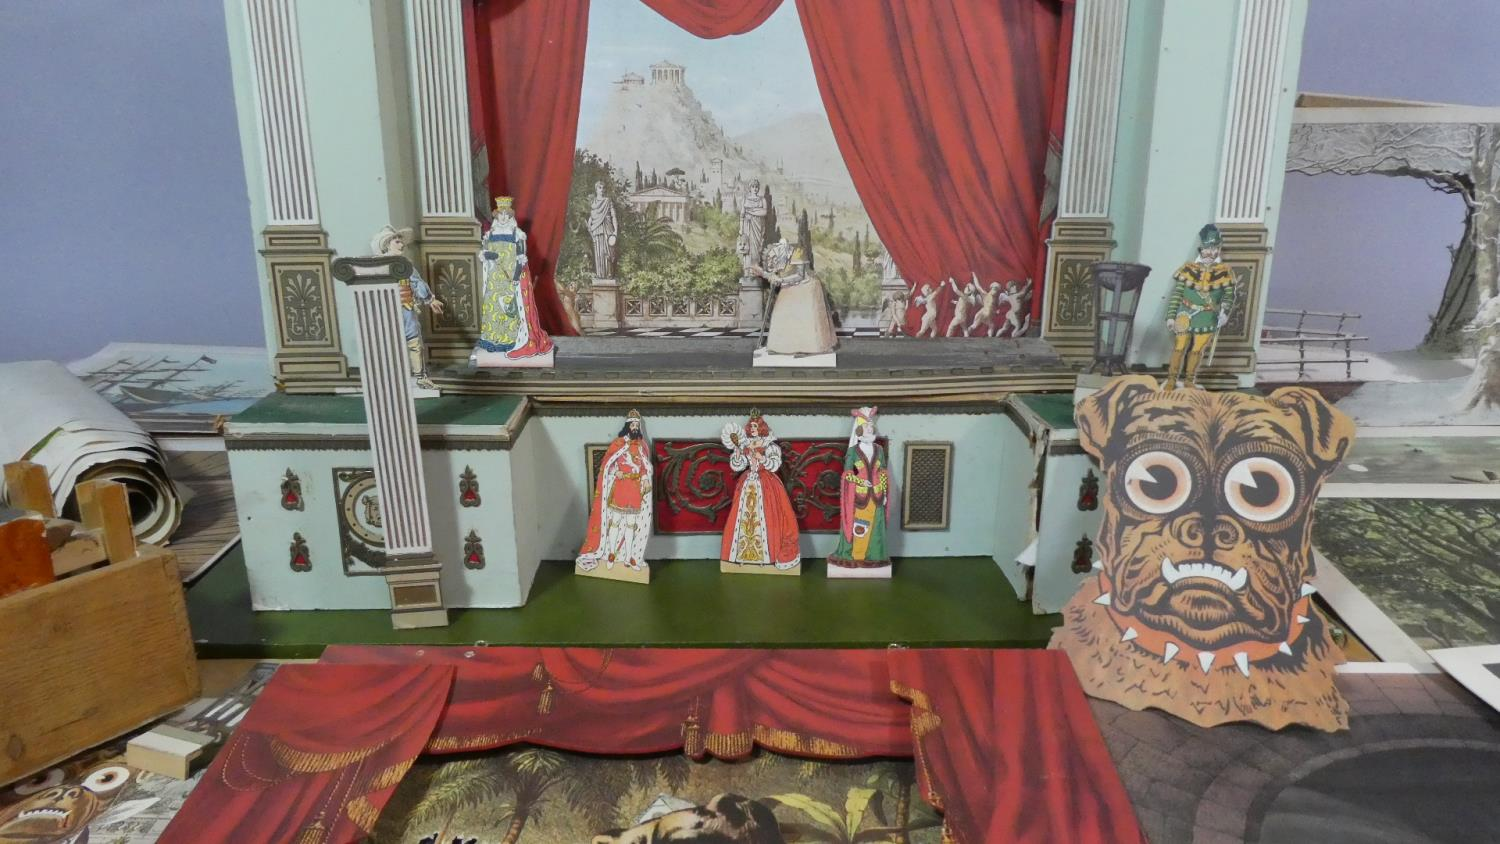 Lot 56 - A Large Toy Theatre in Wood and Coloured Card with Large Quantity of Scenery, Backdrops, Safety